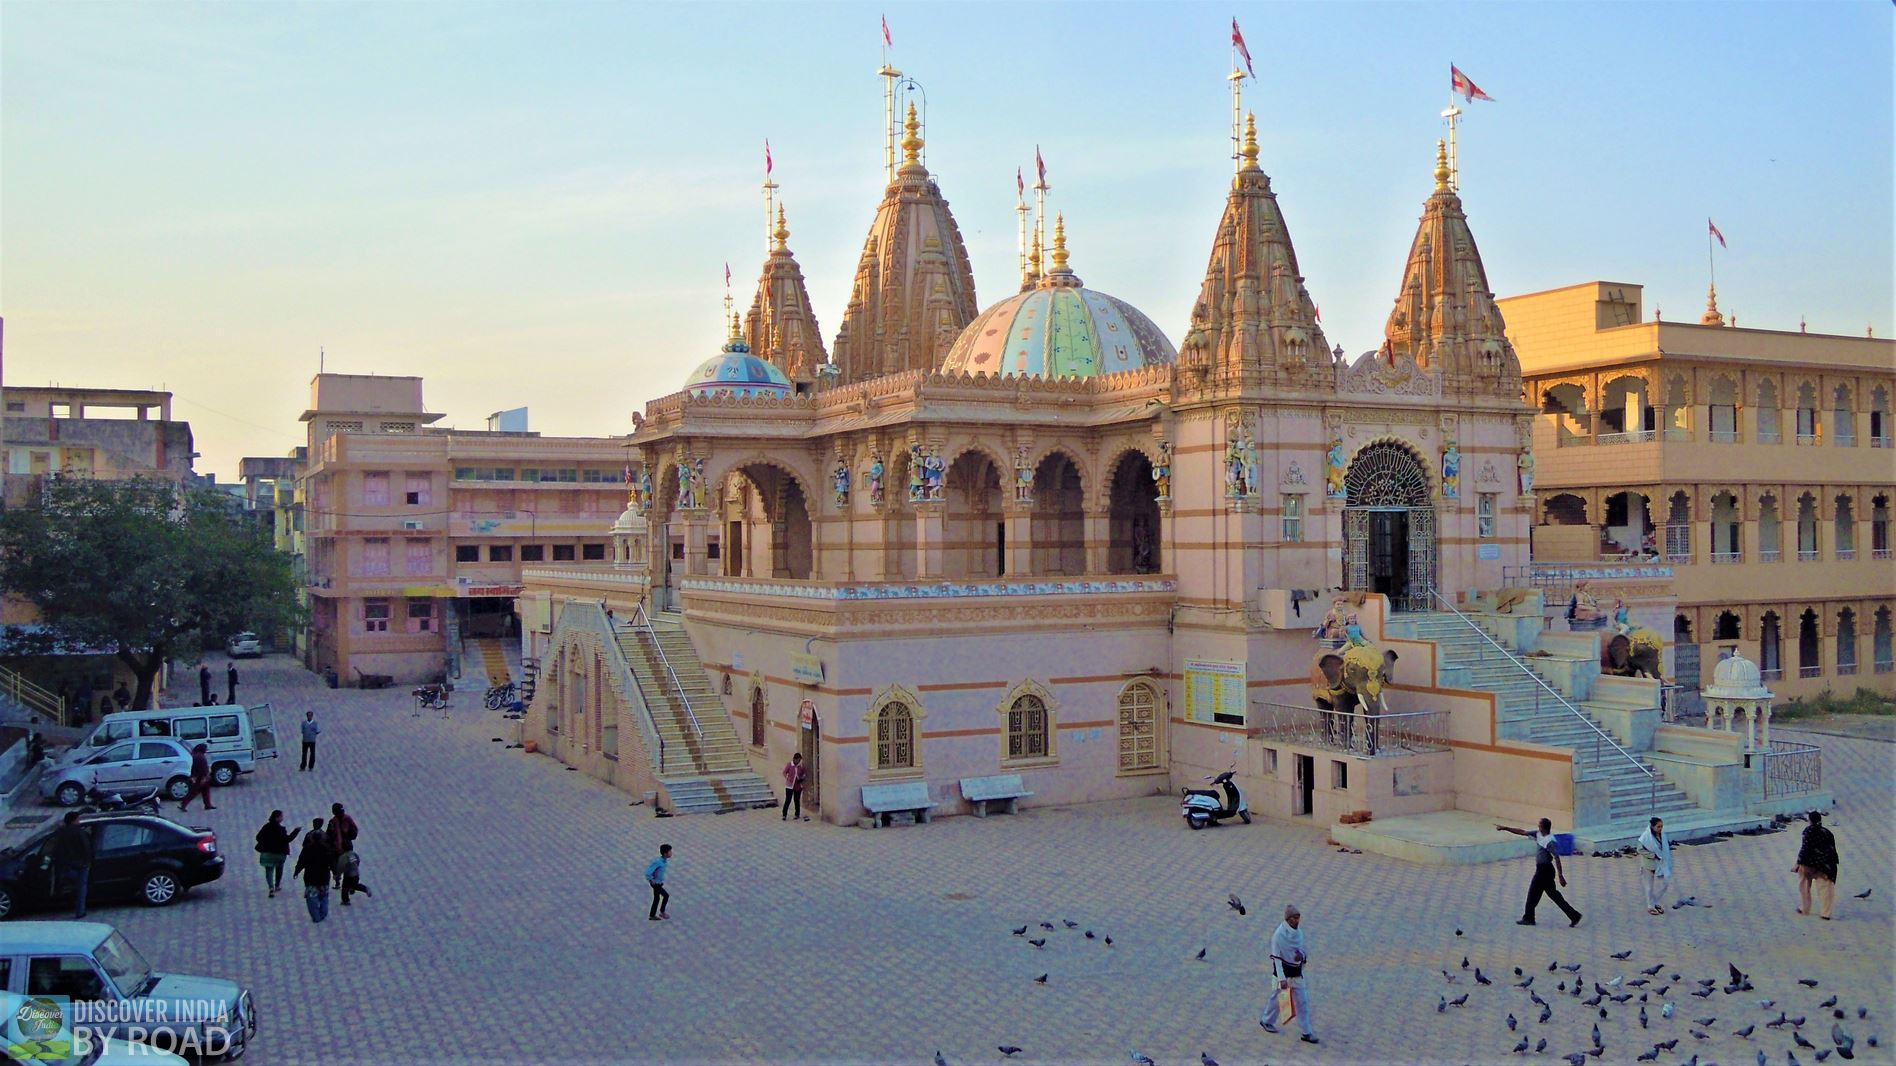 Morning view of Old Swaminarayan Mandir, Junagadh